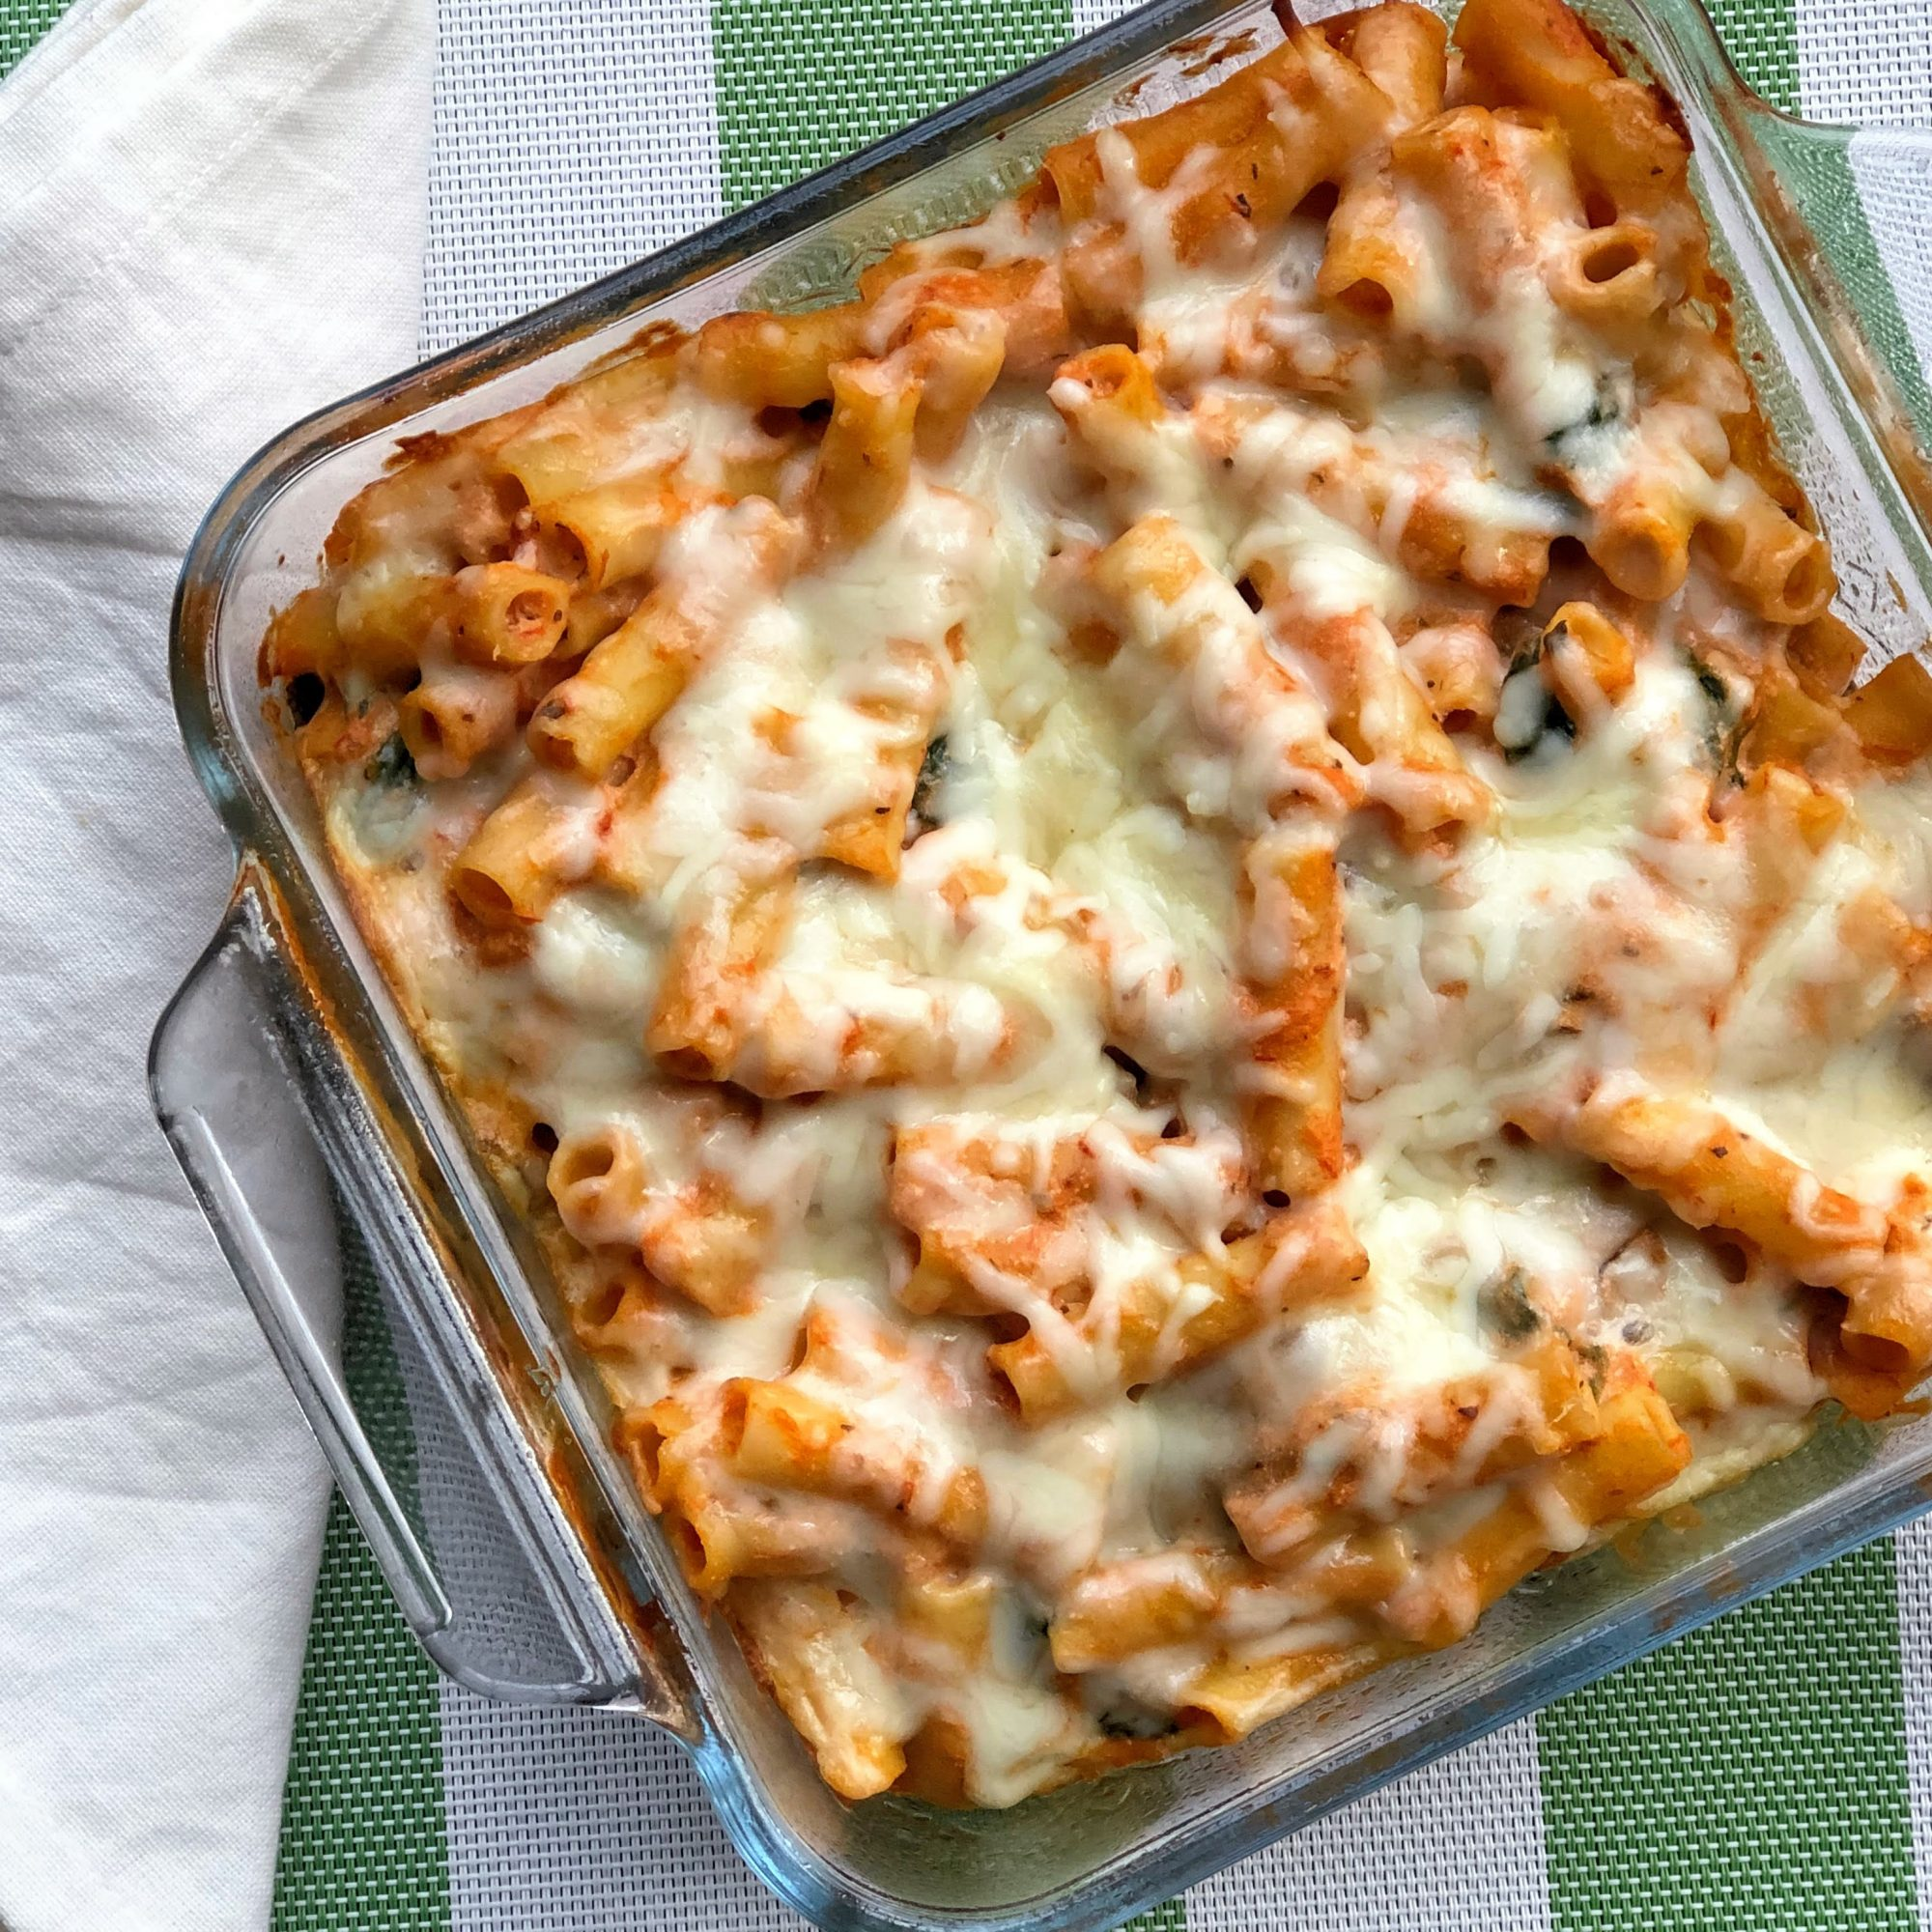 baked ziti in red sauce with cheese in a glass dish